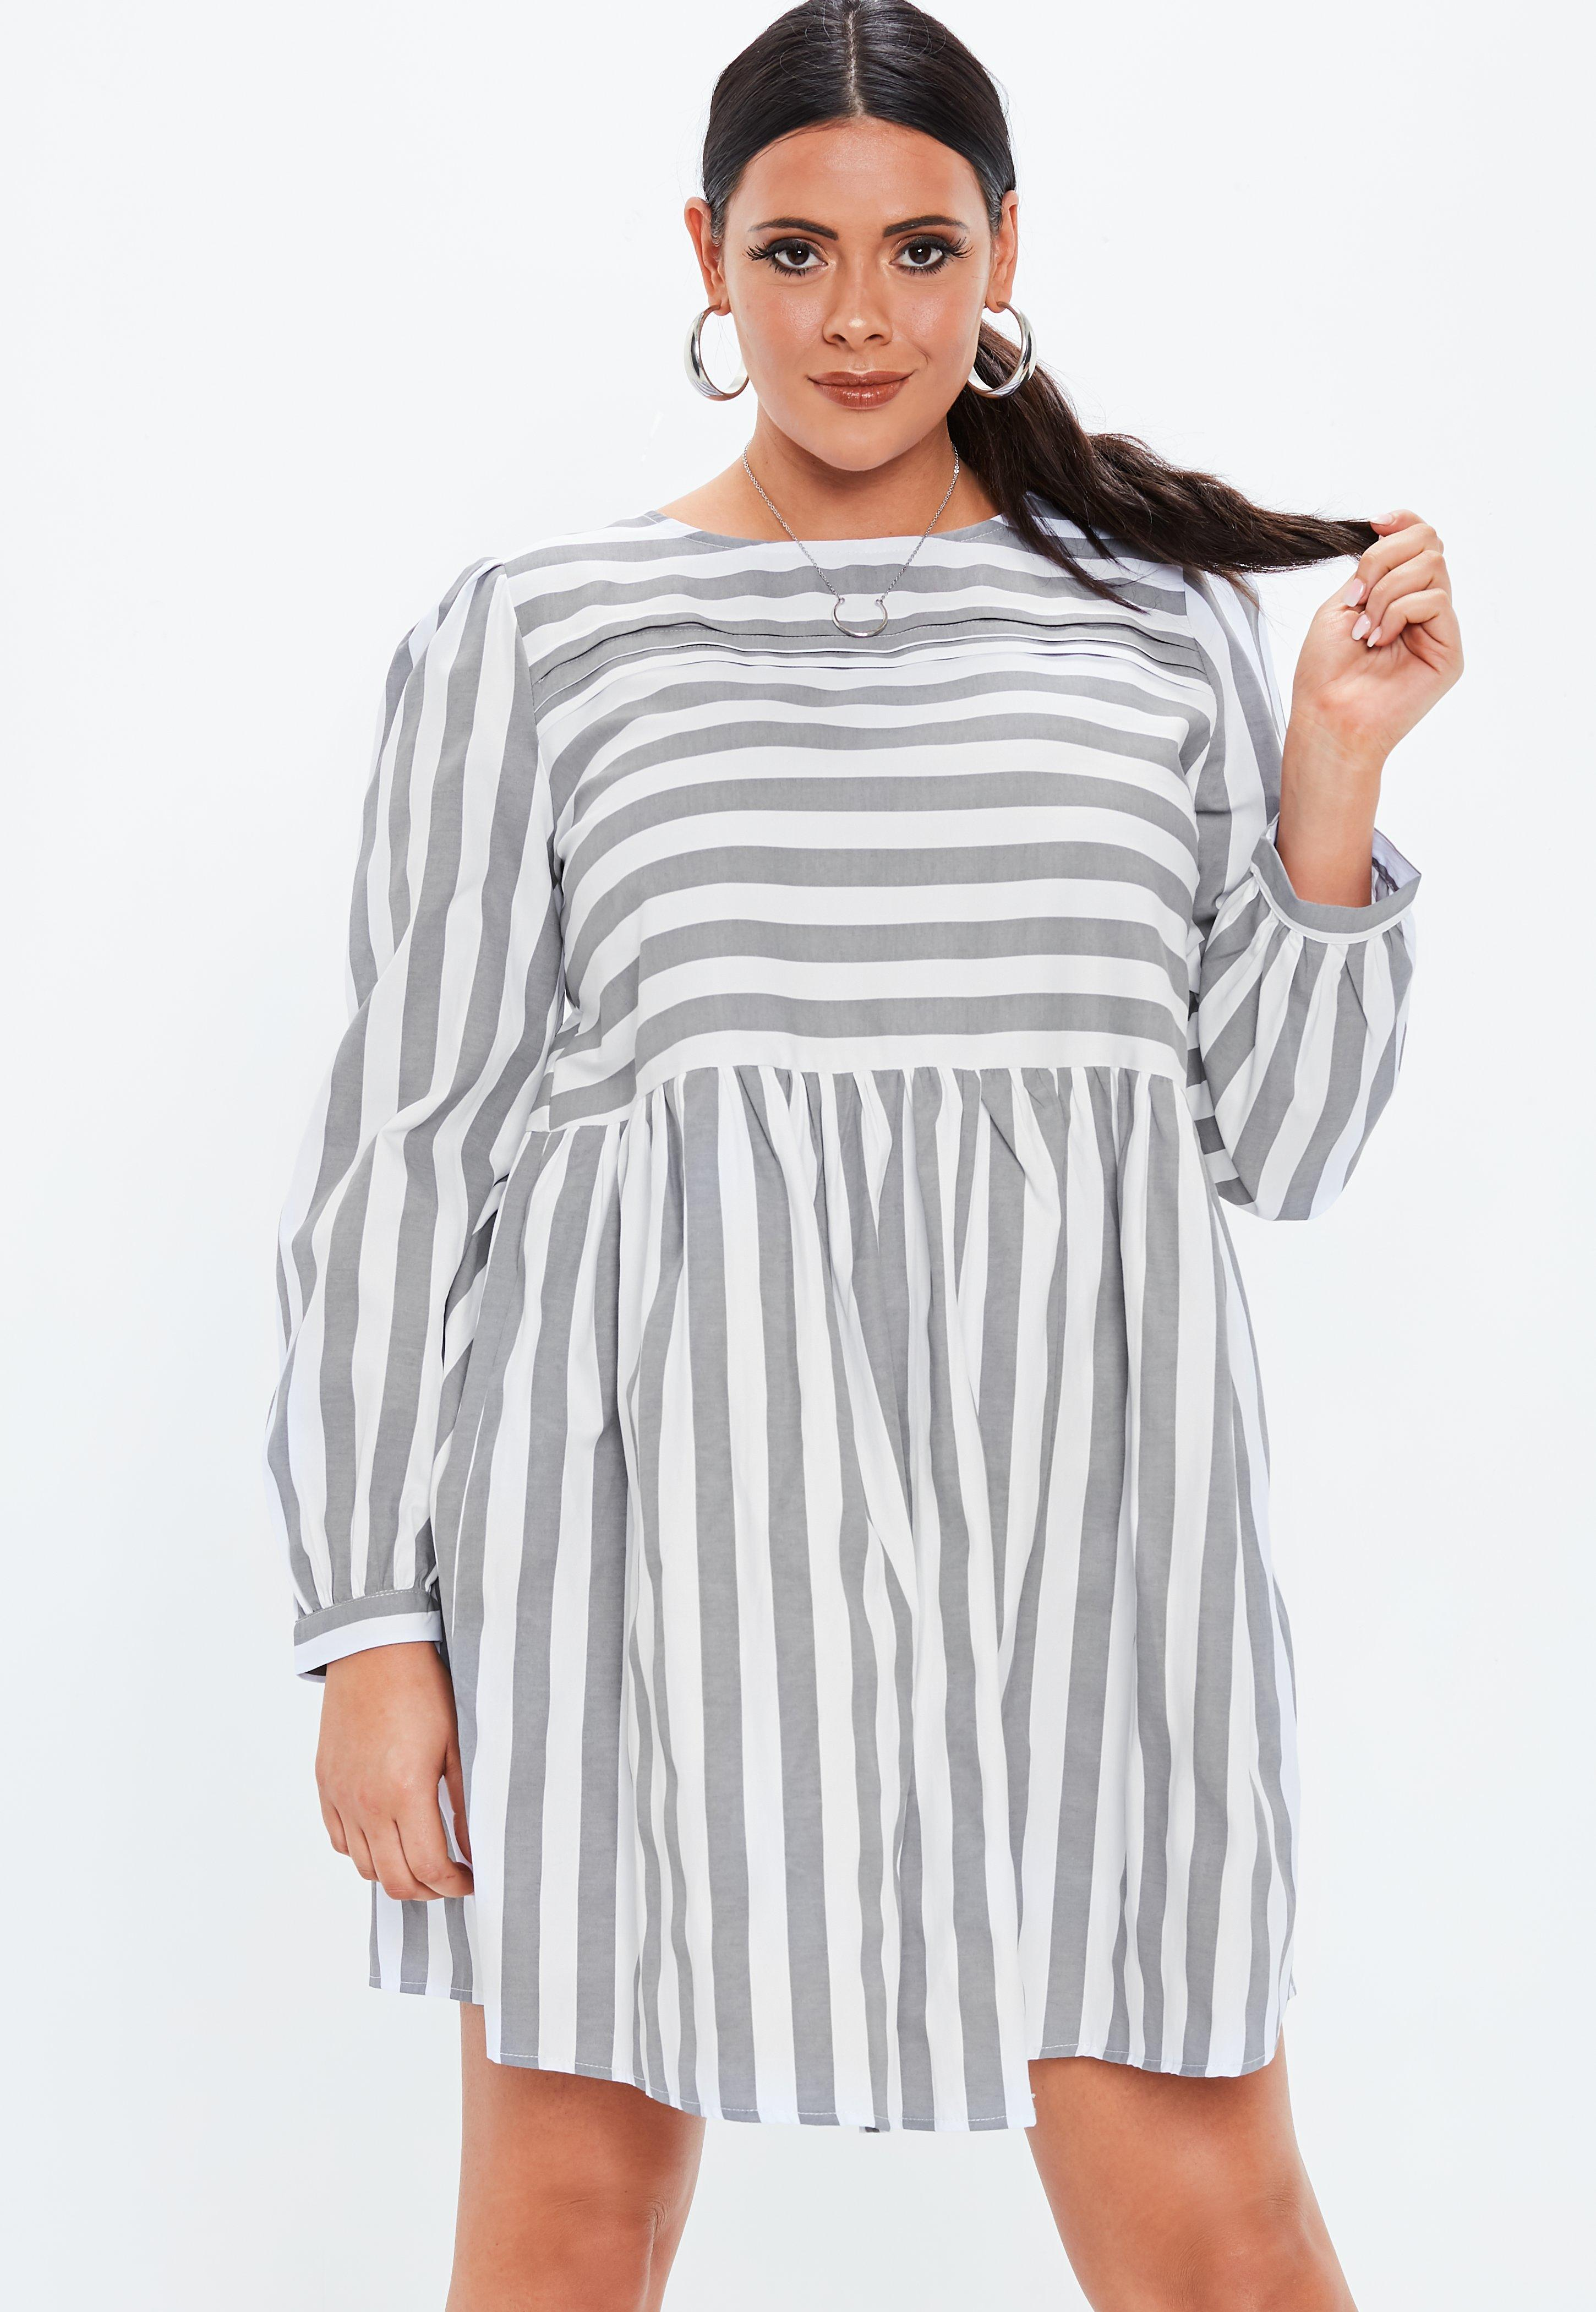 Lyst - Missguided Plus Size Grey Stripe Long Sleeve Skater Dress in Gray